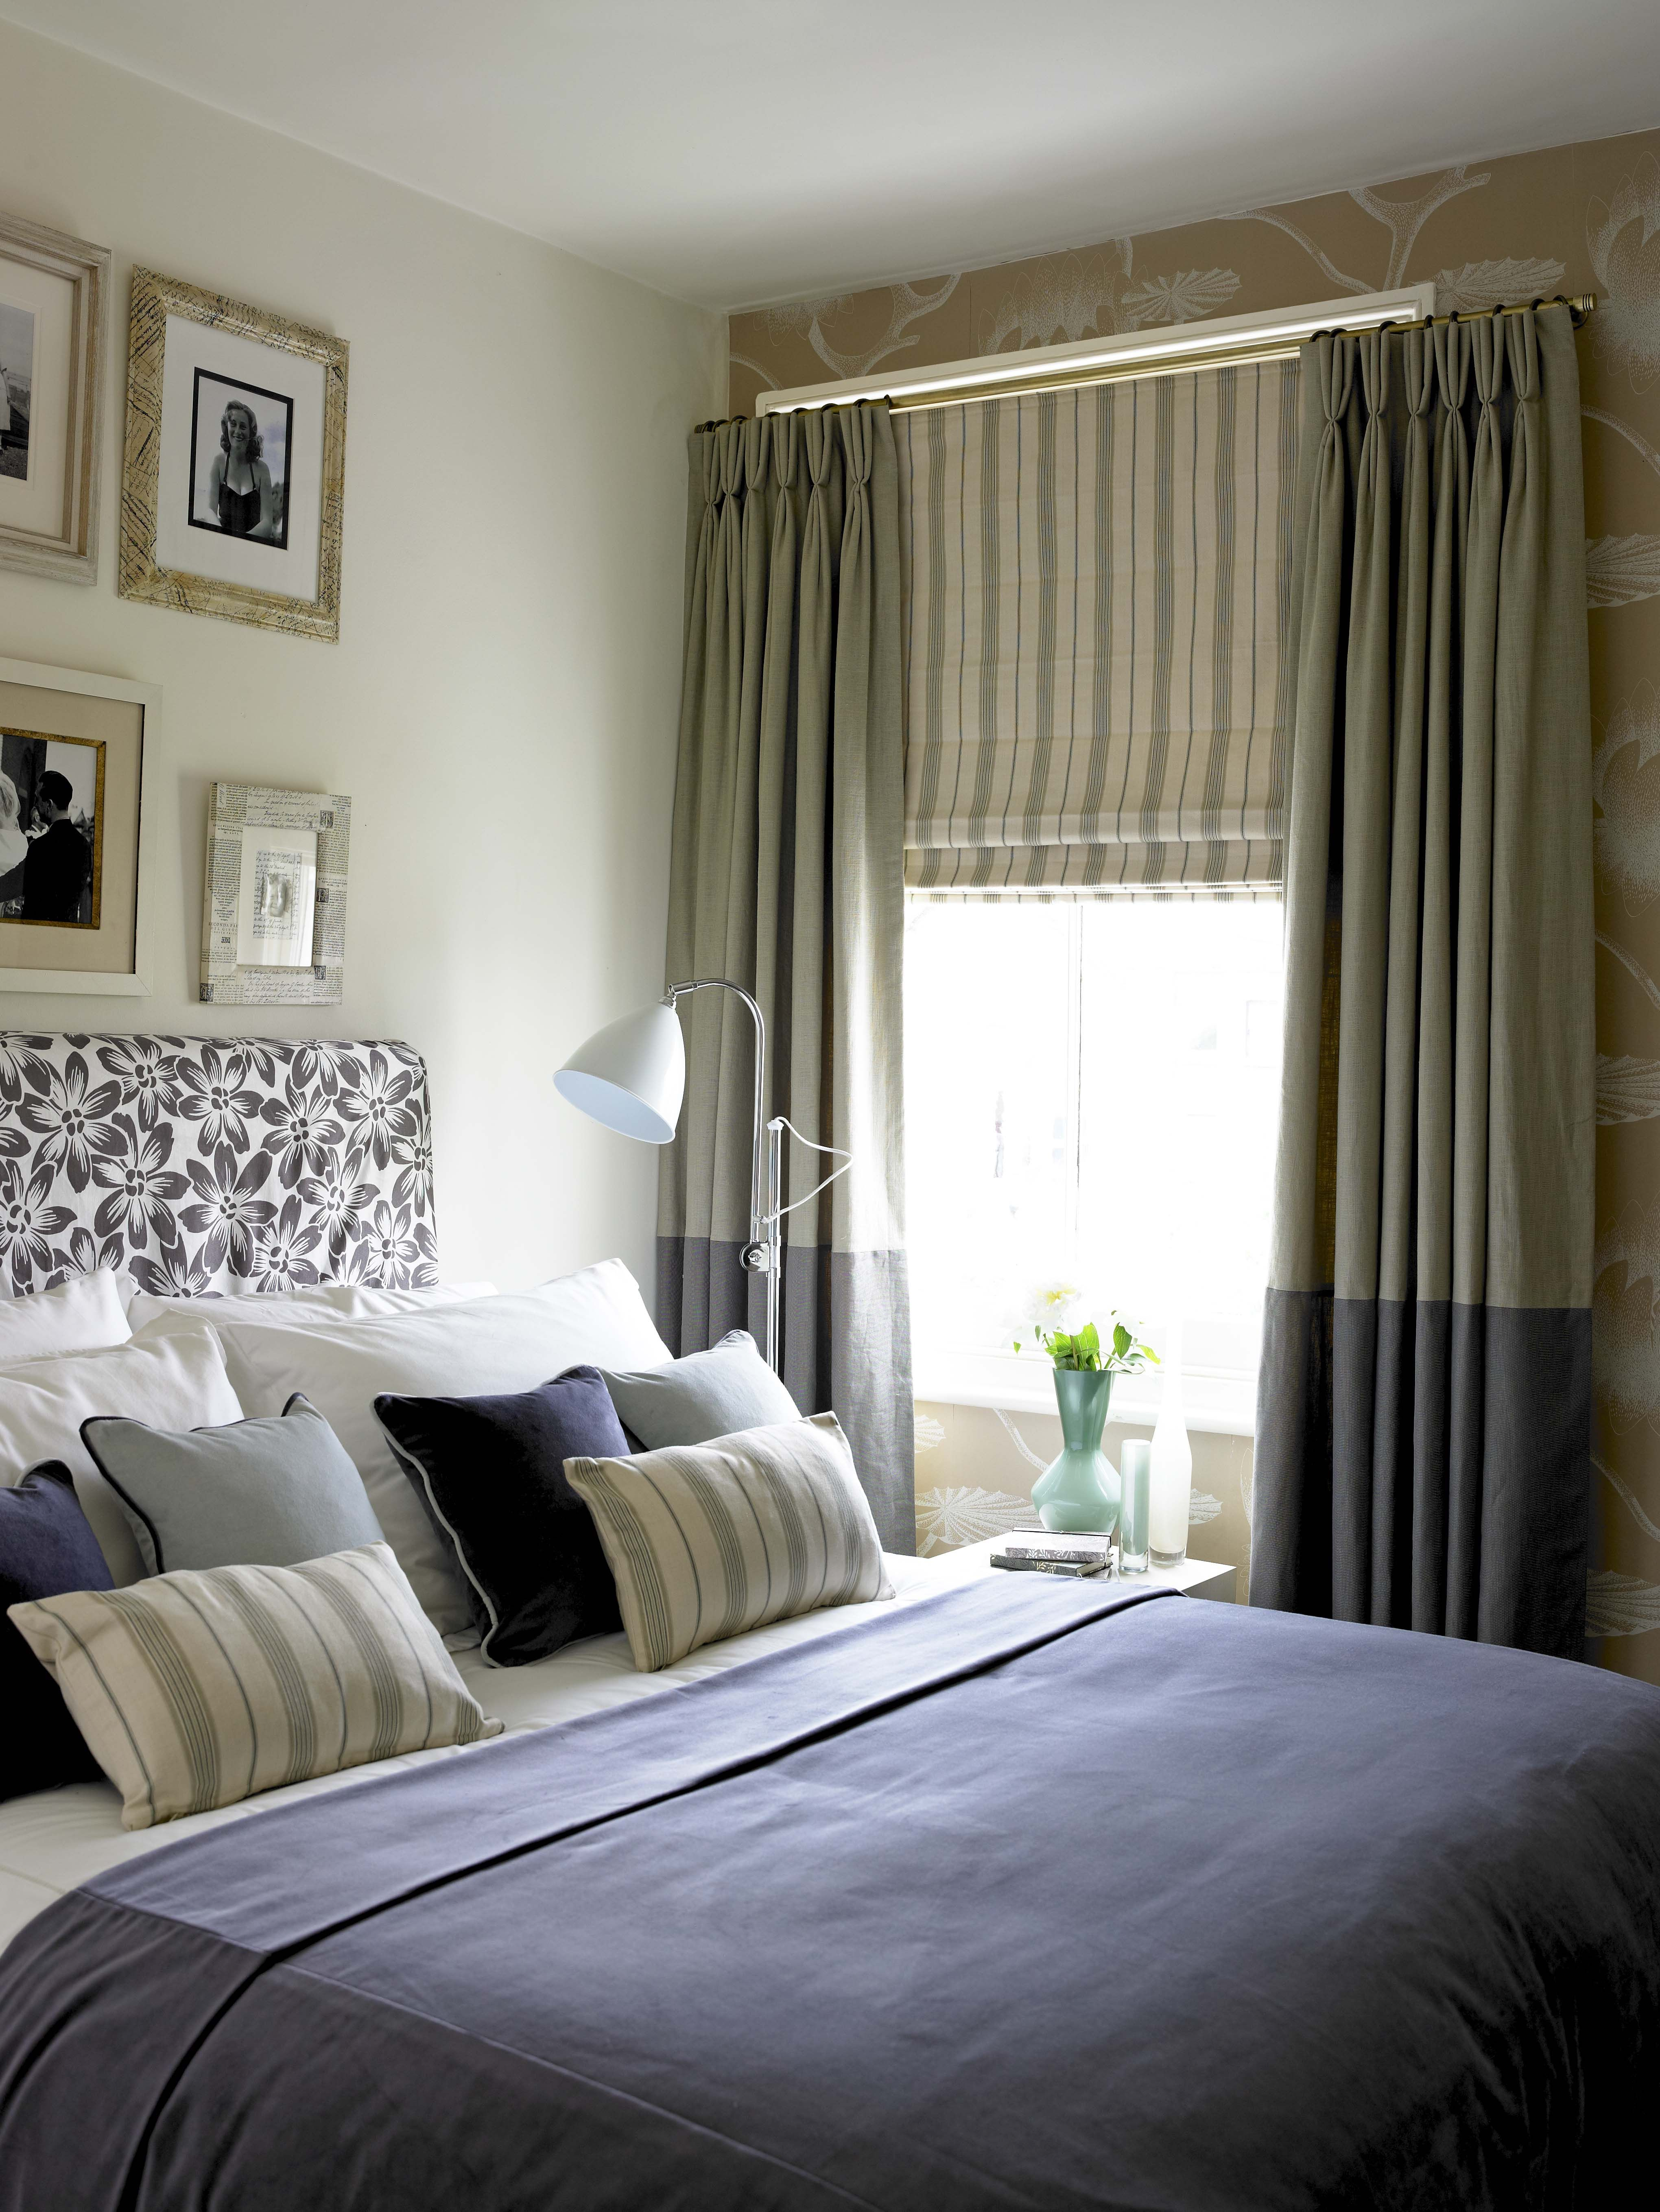 night curtains drapes bedroom amys for black office bed stand and amazing queen above bedford canopy